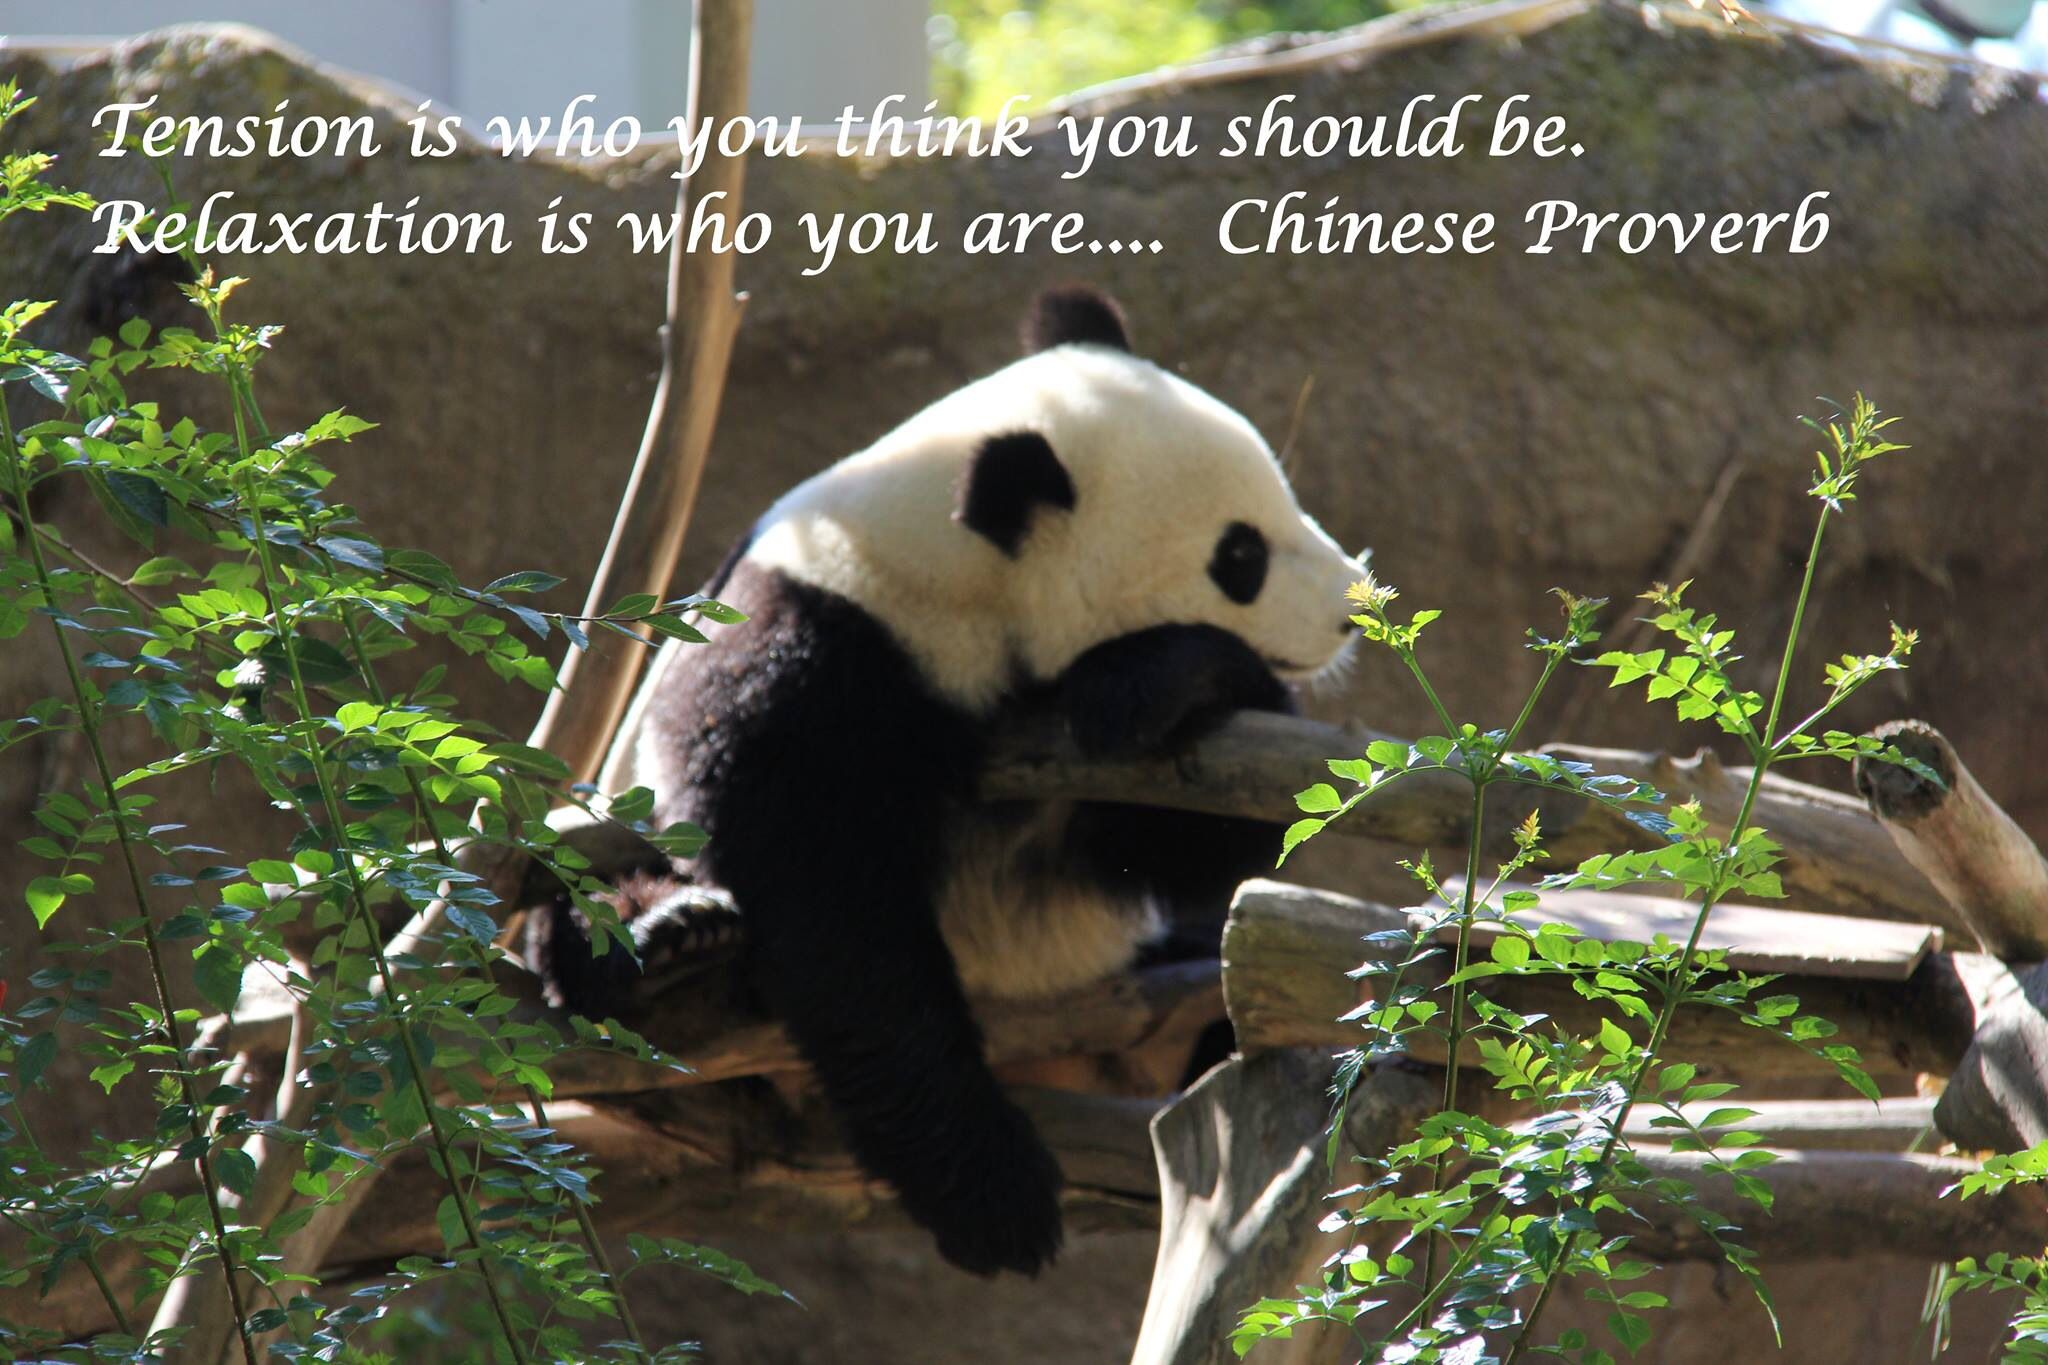 Tension is who you think you should be.  Relaxation is who you are .... Chinese Proverb